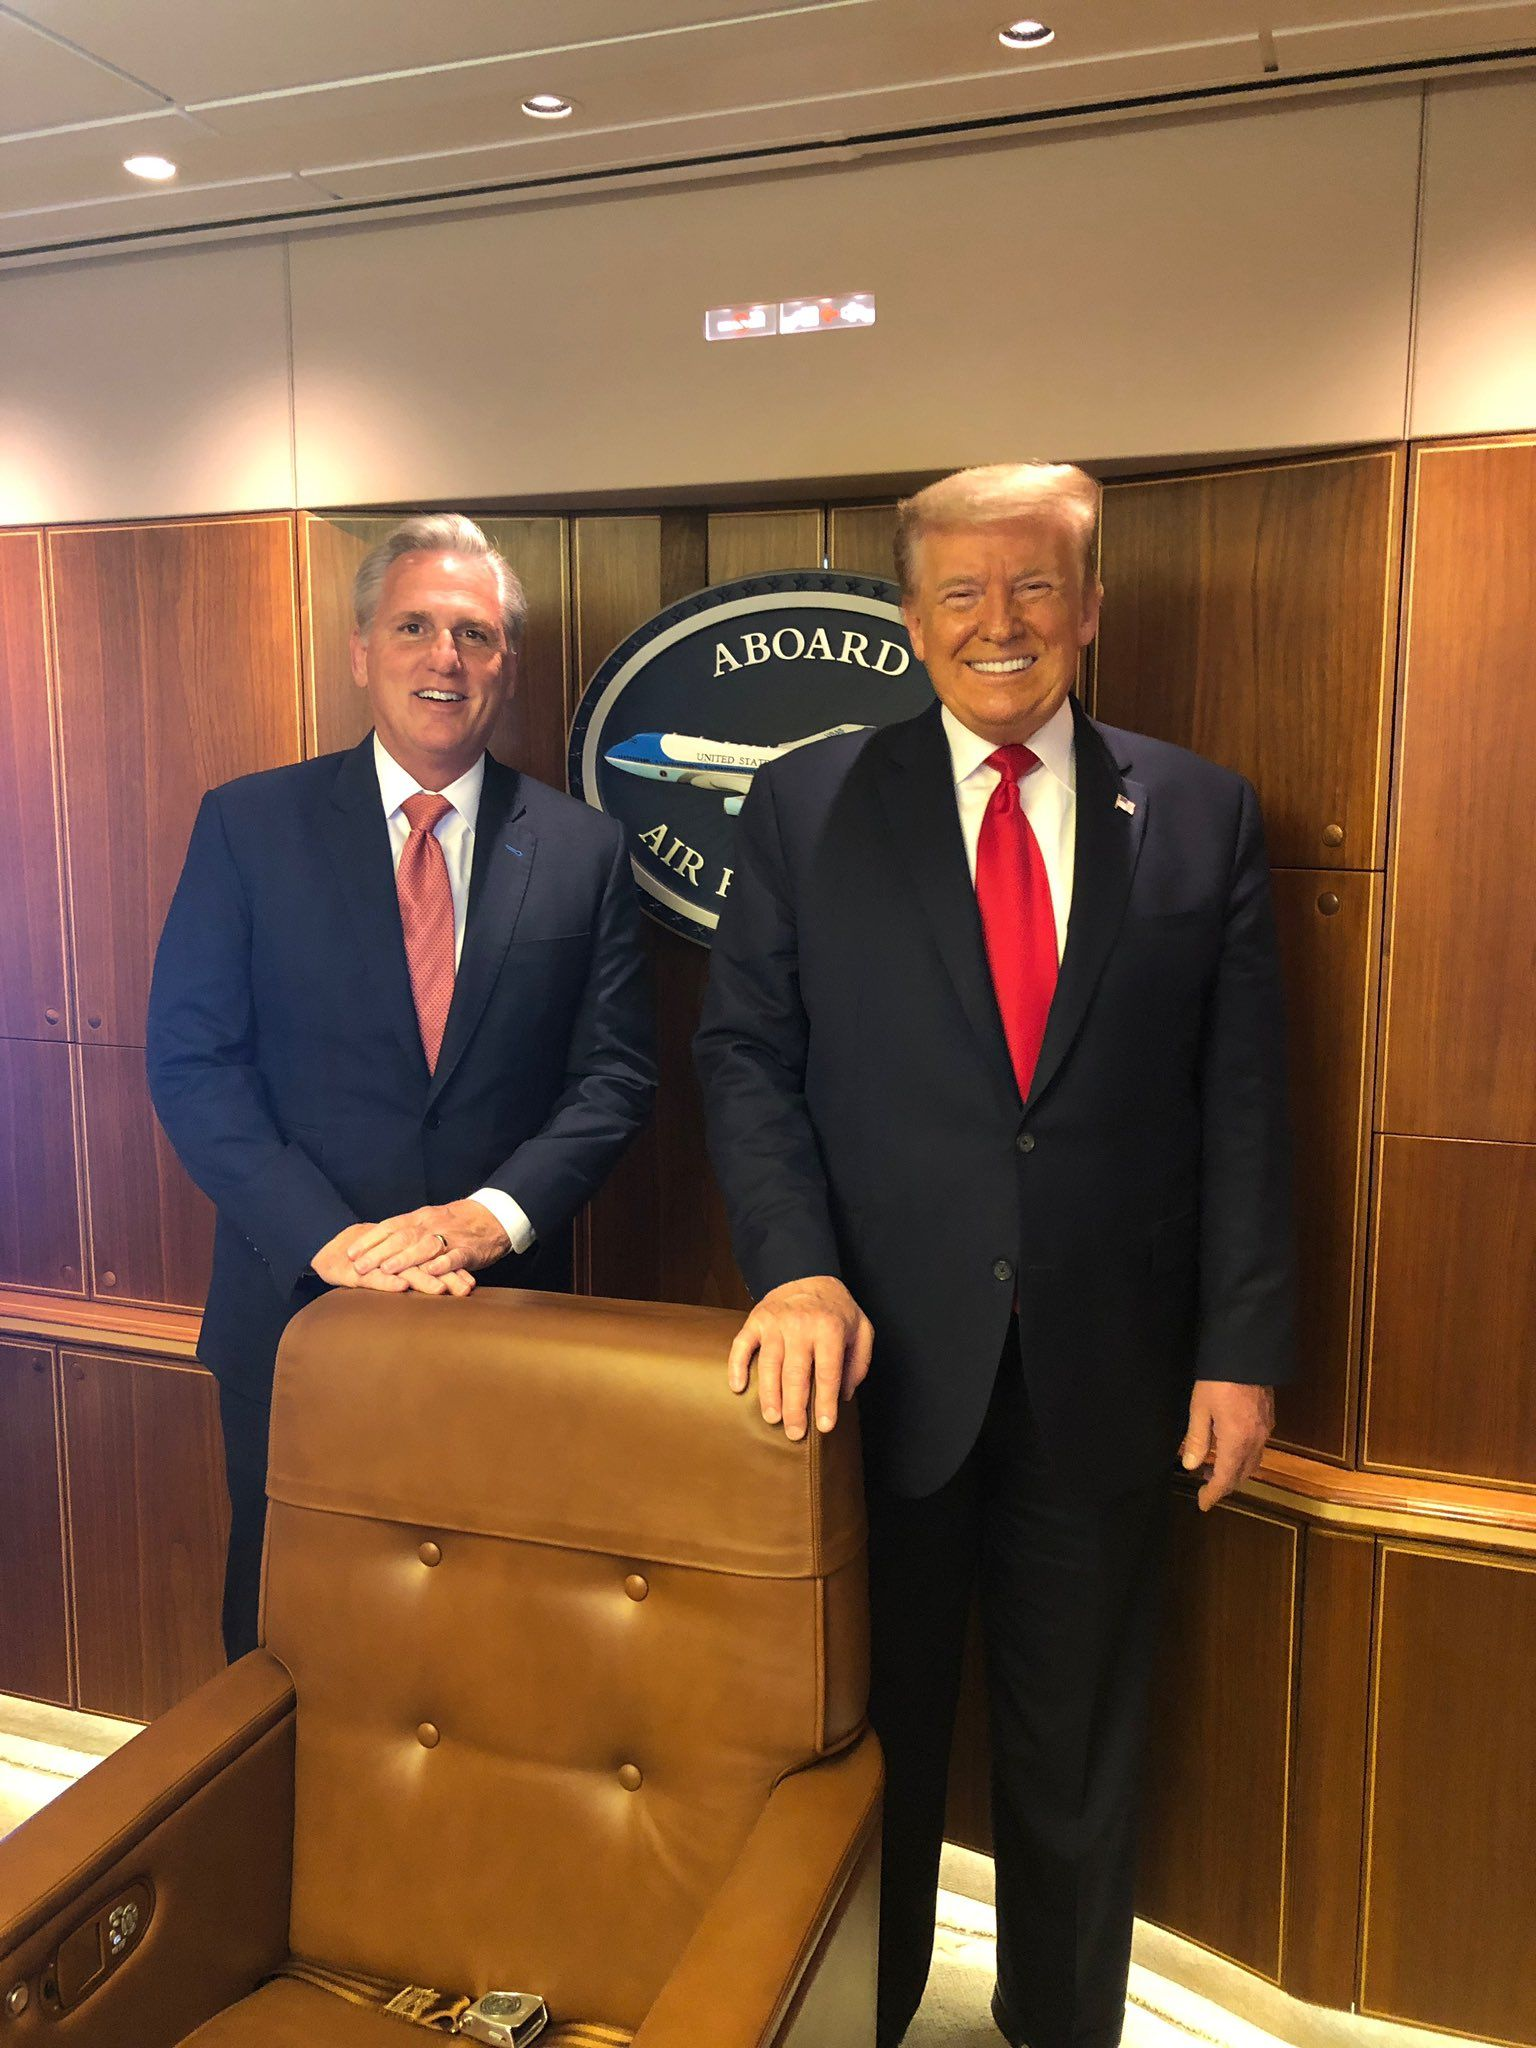 Kevin McCarthy and Donald Trump smiling aboard Air Force One.